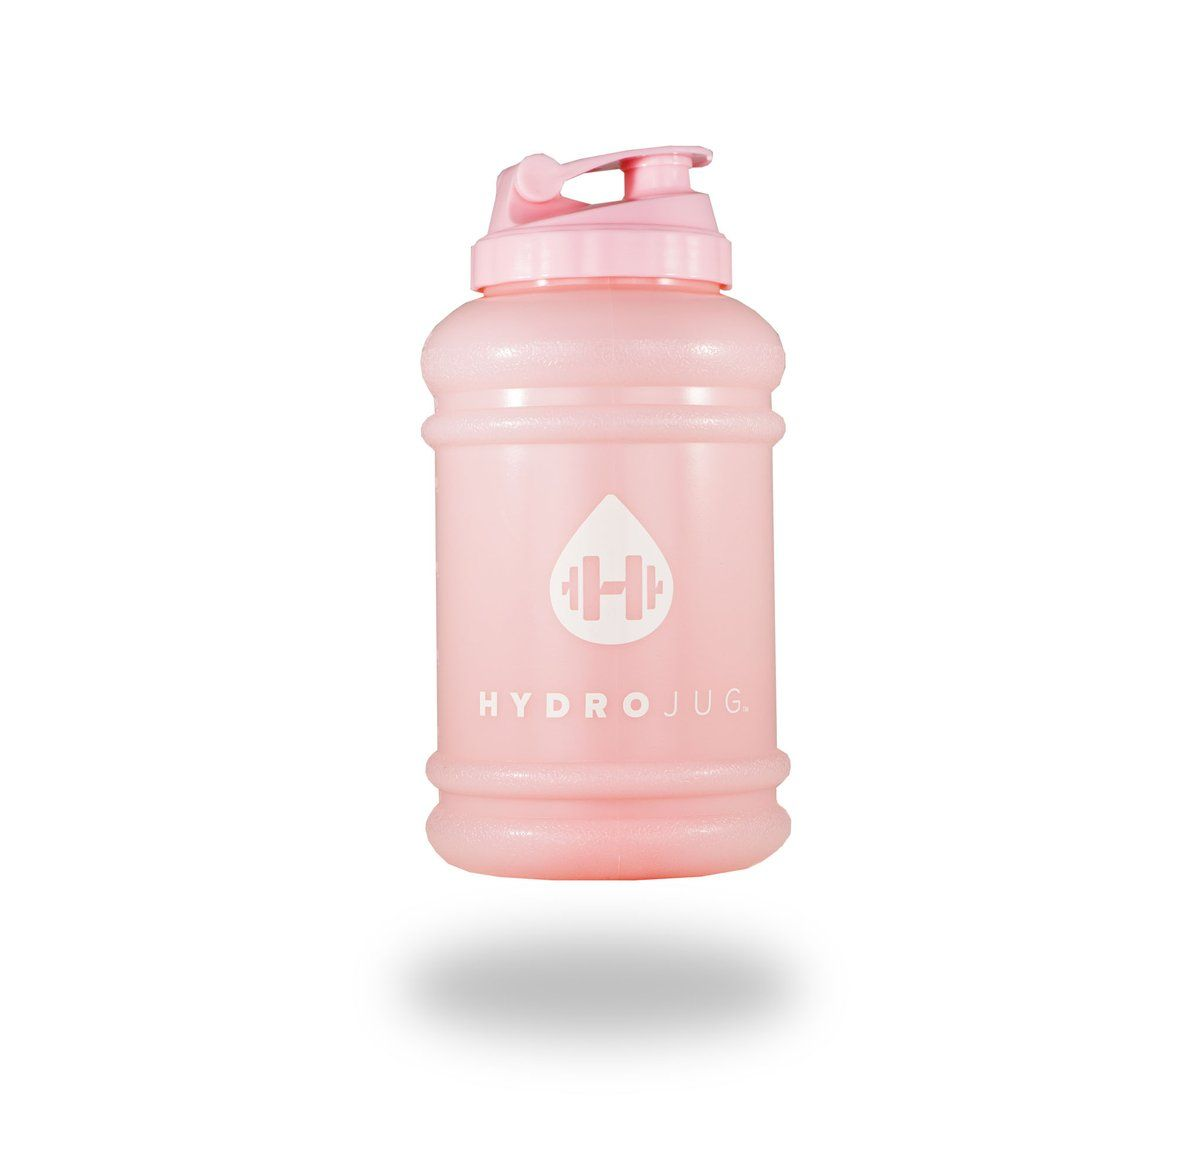 Hydrojug Water Bottle Water Bottle Gallon Water Bottle Bottle